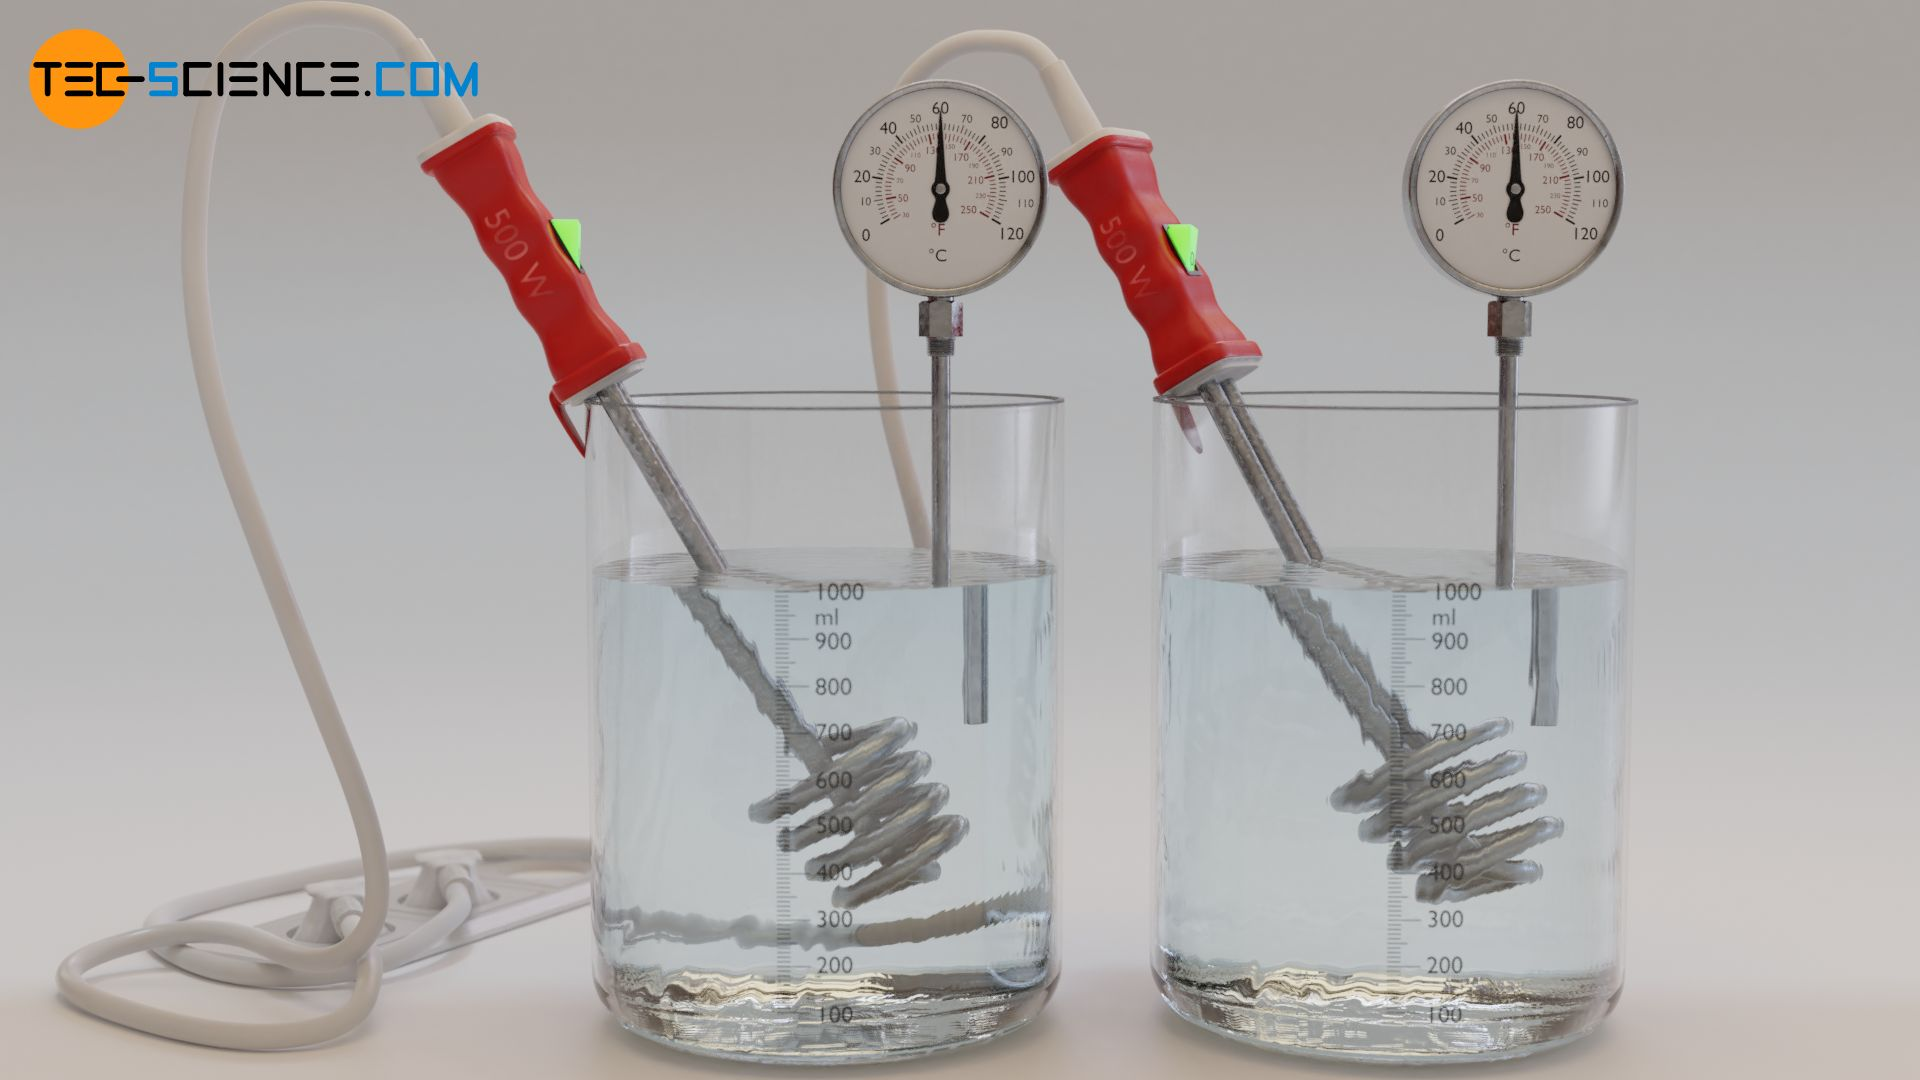 Heating twice the mass of water requires twice the amount of heat